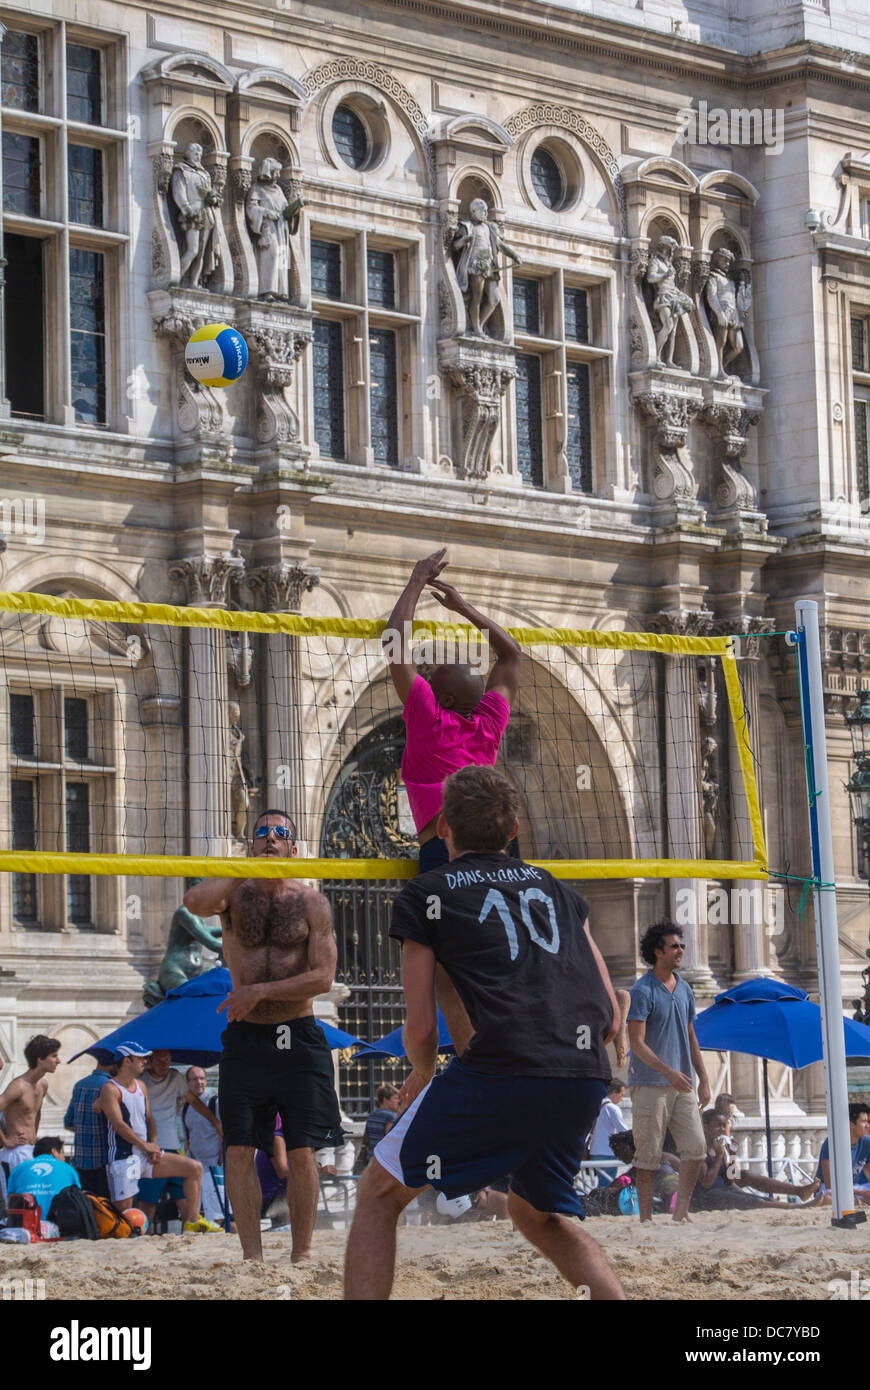 Paris, France, Young People Playing on City Beach, 'Paris Plages', Beach Volleyball, - Stock Image